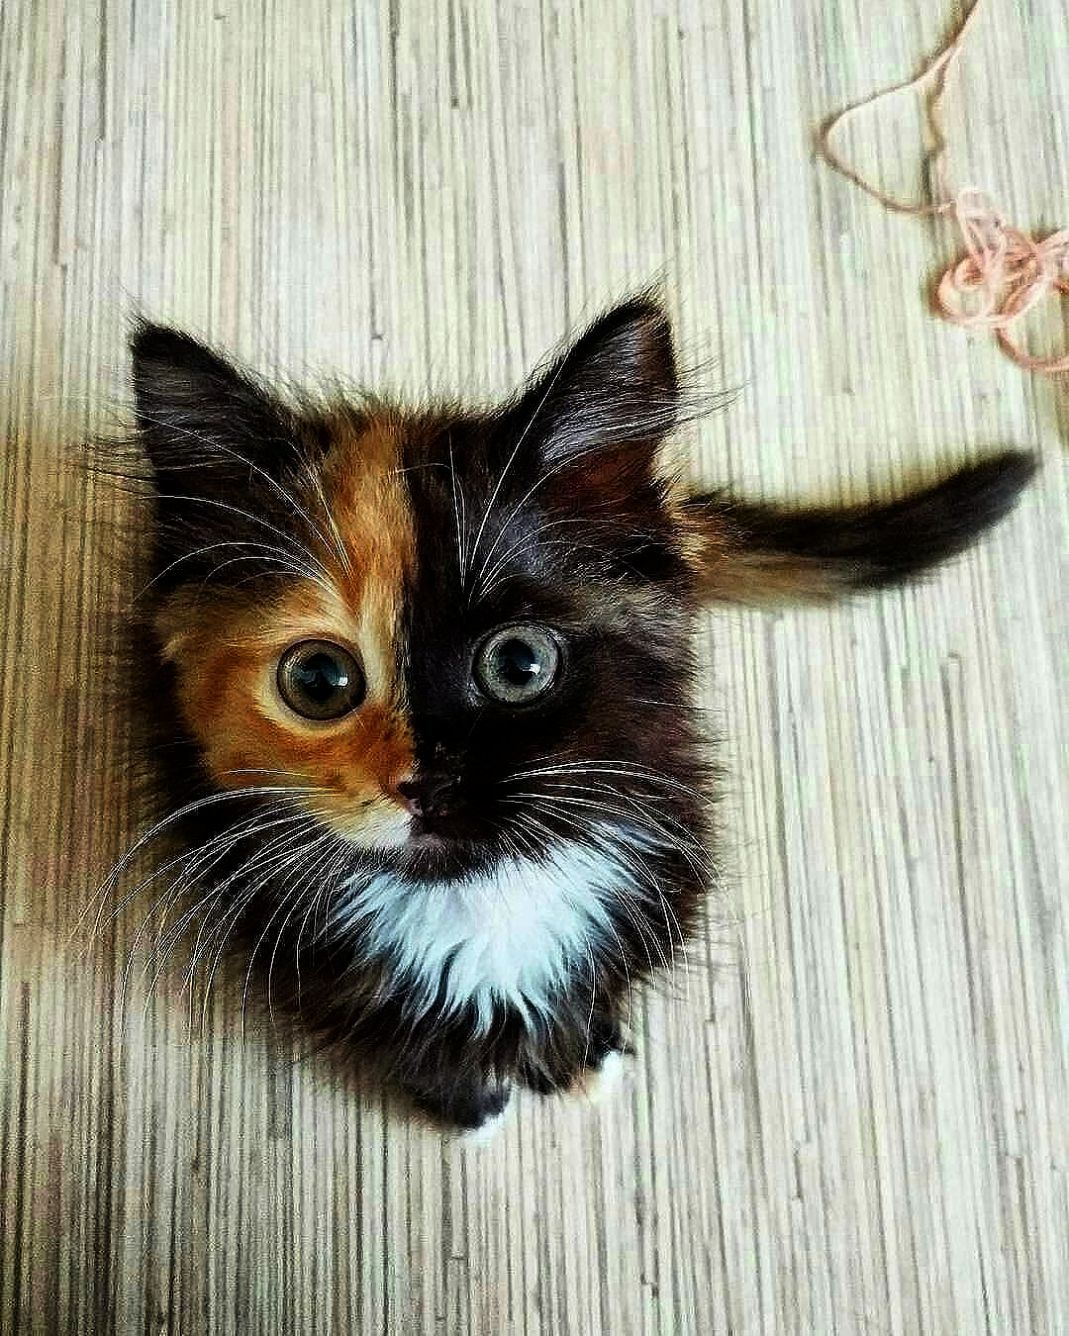 Cats And Kittens For Sale Gumtree Cats And Kittens Norwich Cats